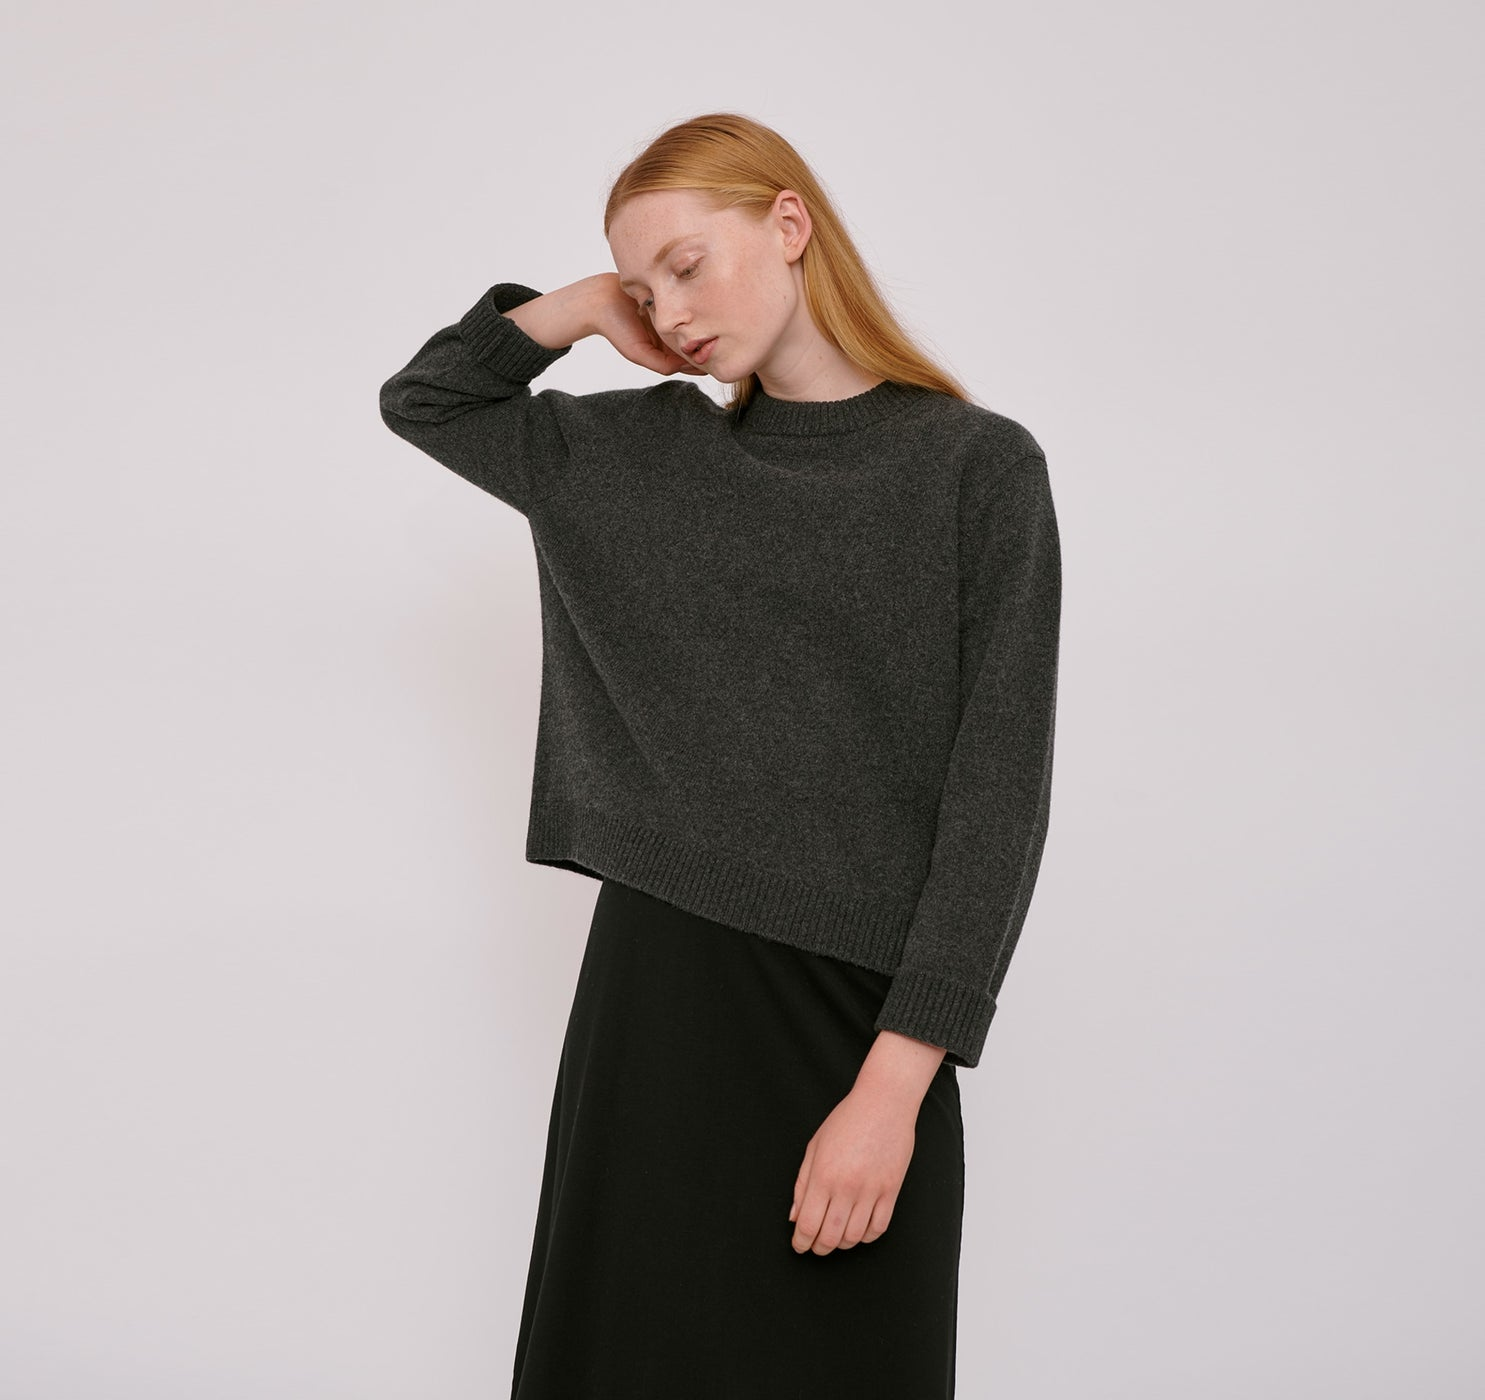 Recycled Wool Boxy Knit